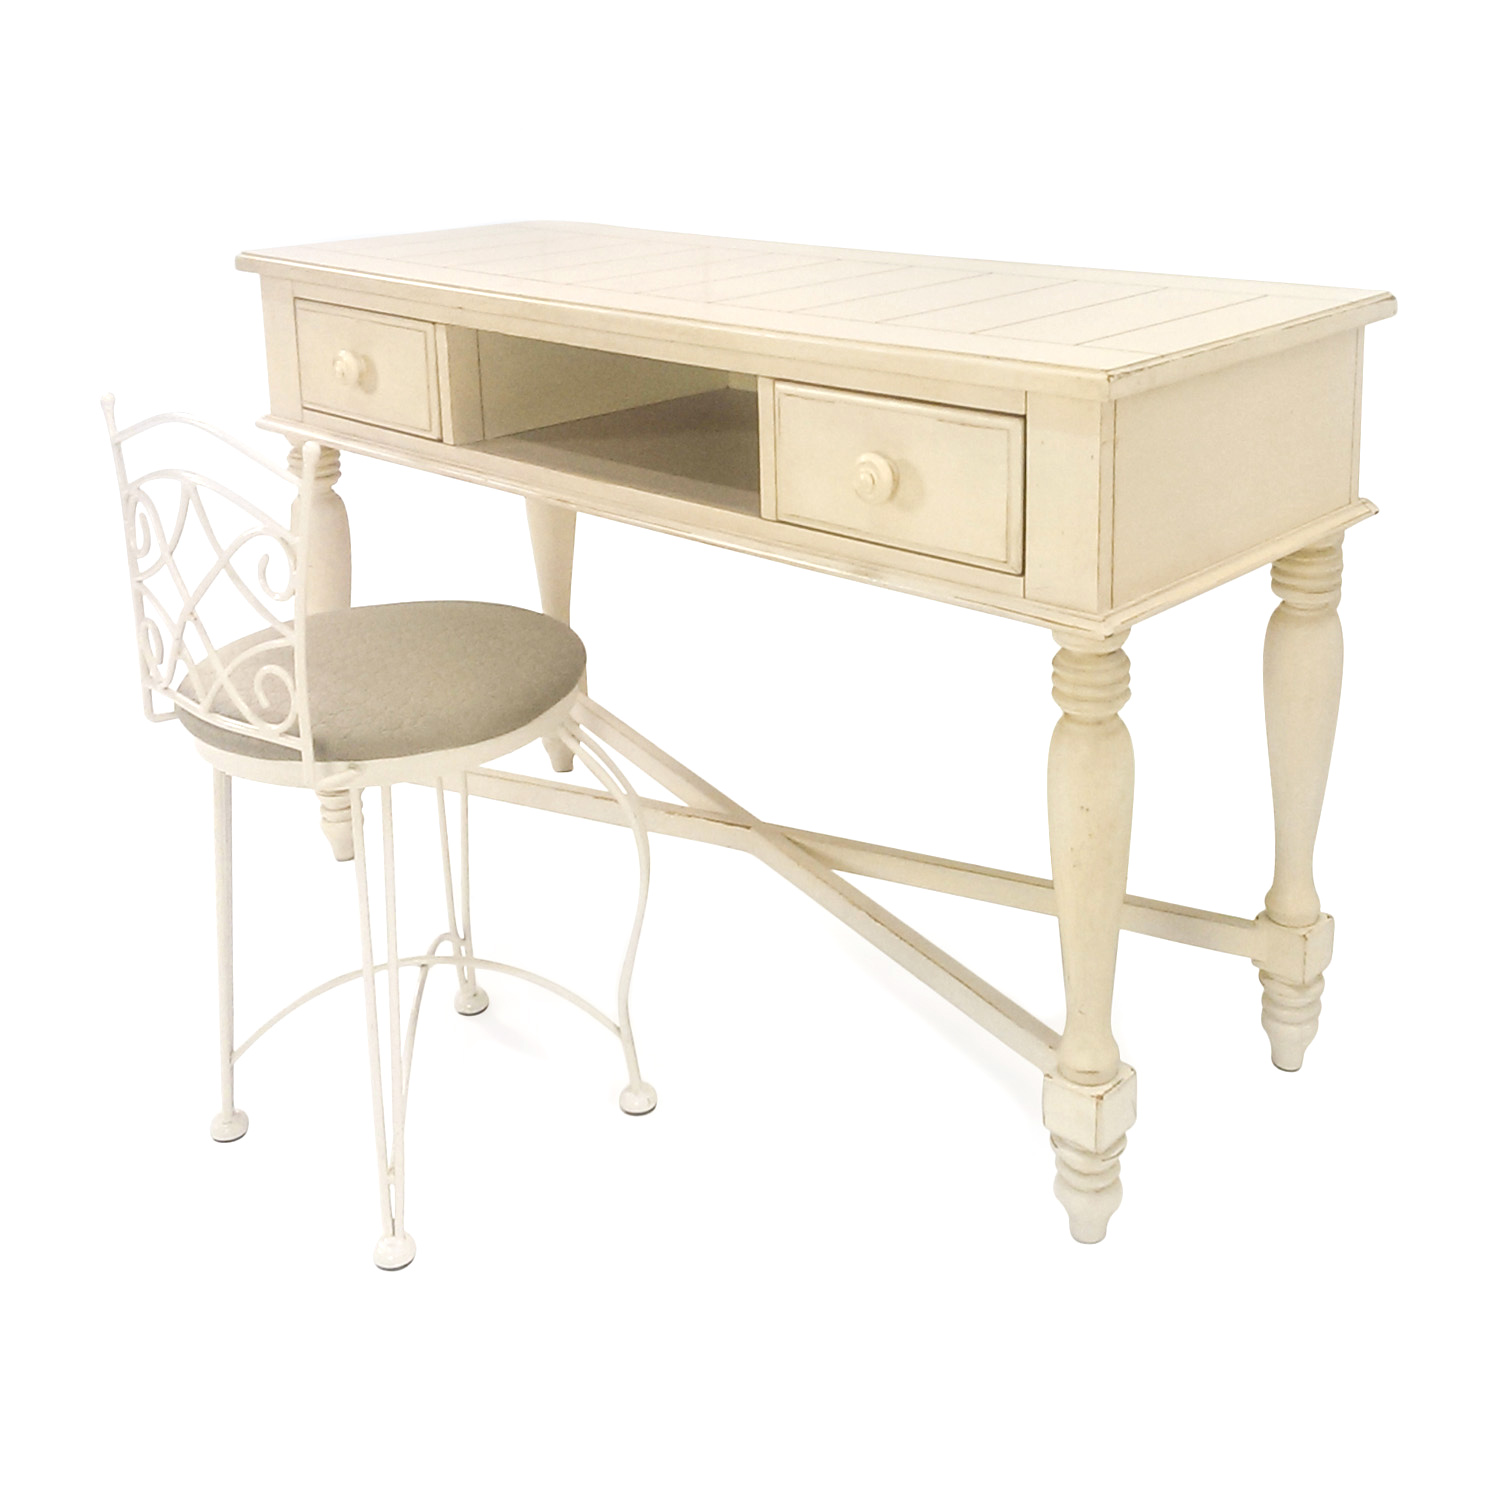 76 Off Cream Colored Vanity Set Tables